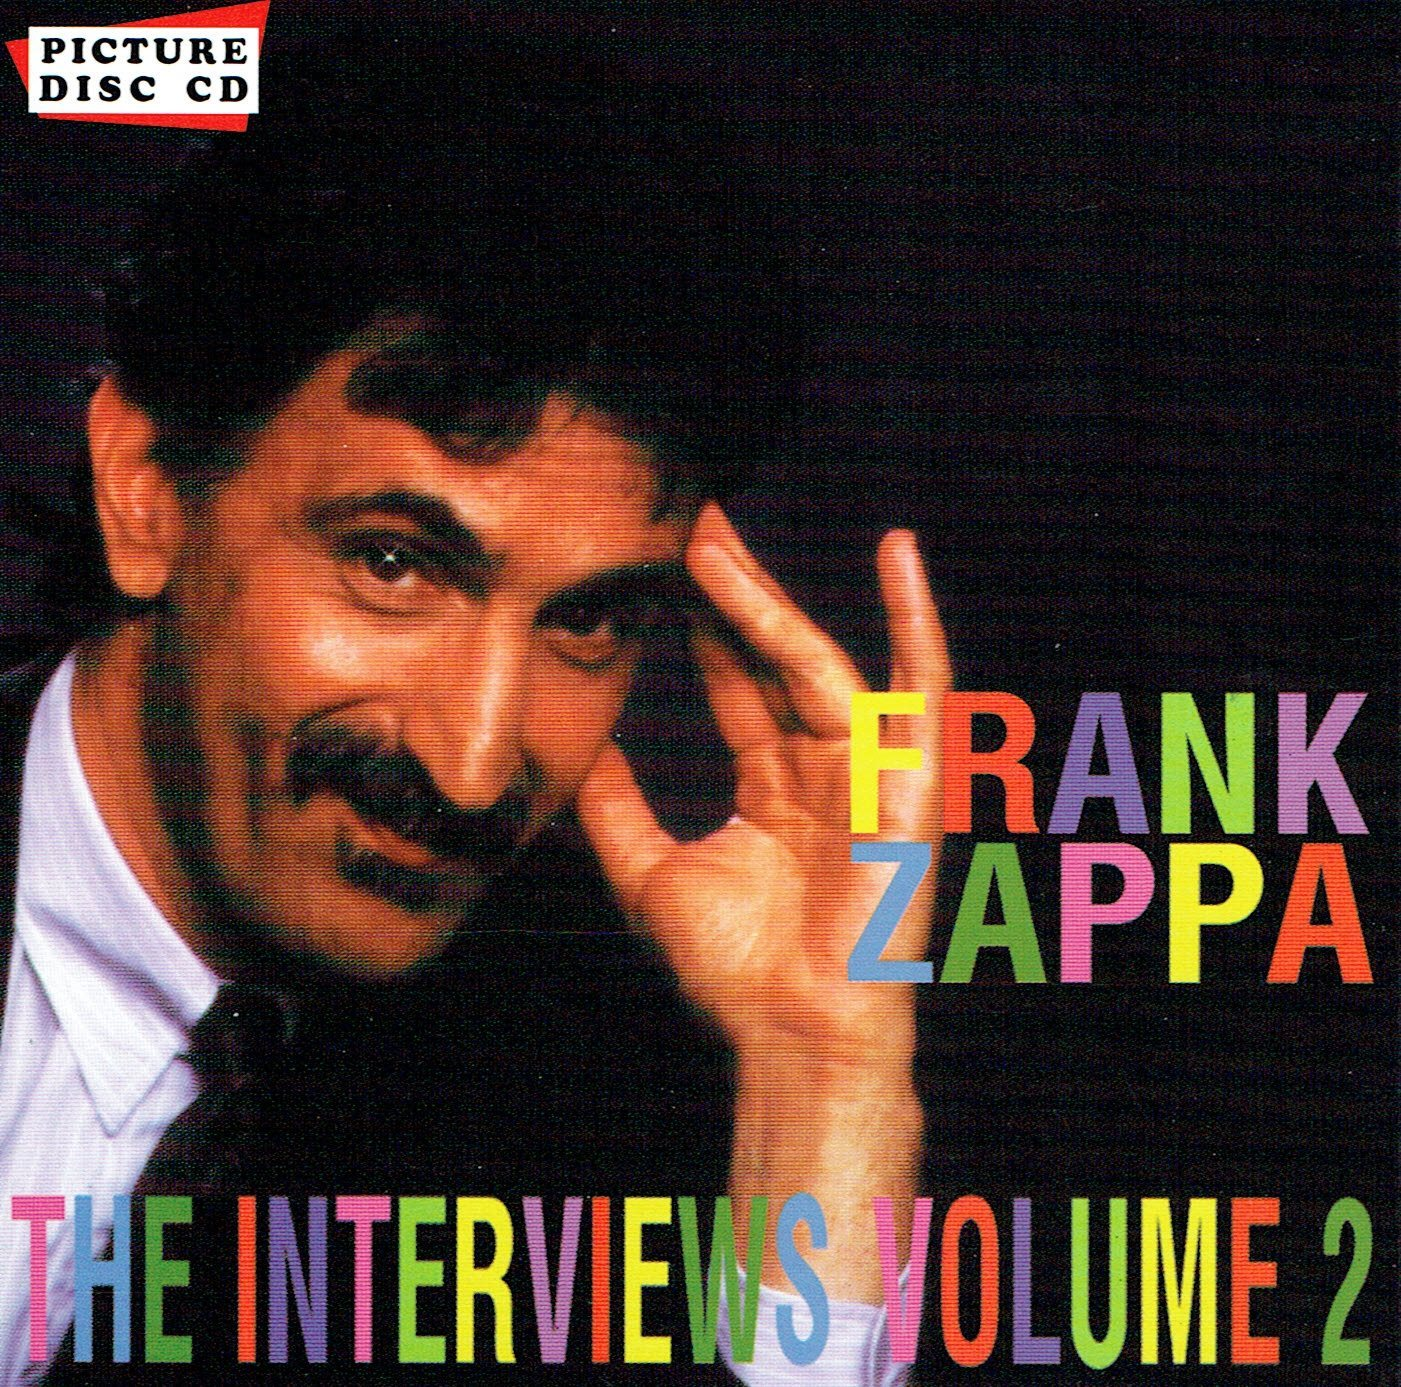 FRANK ZAPPA - THE INTERVIEWS VOL.2. CD